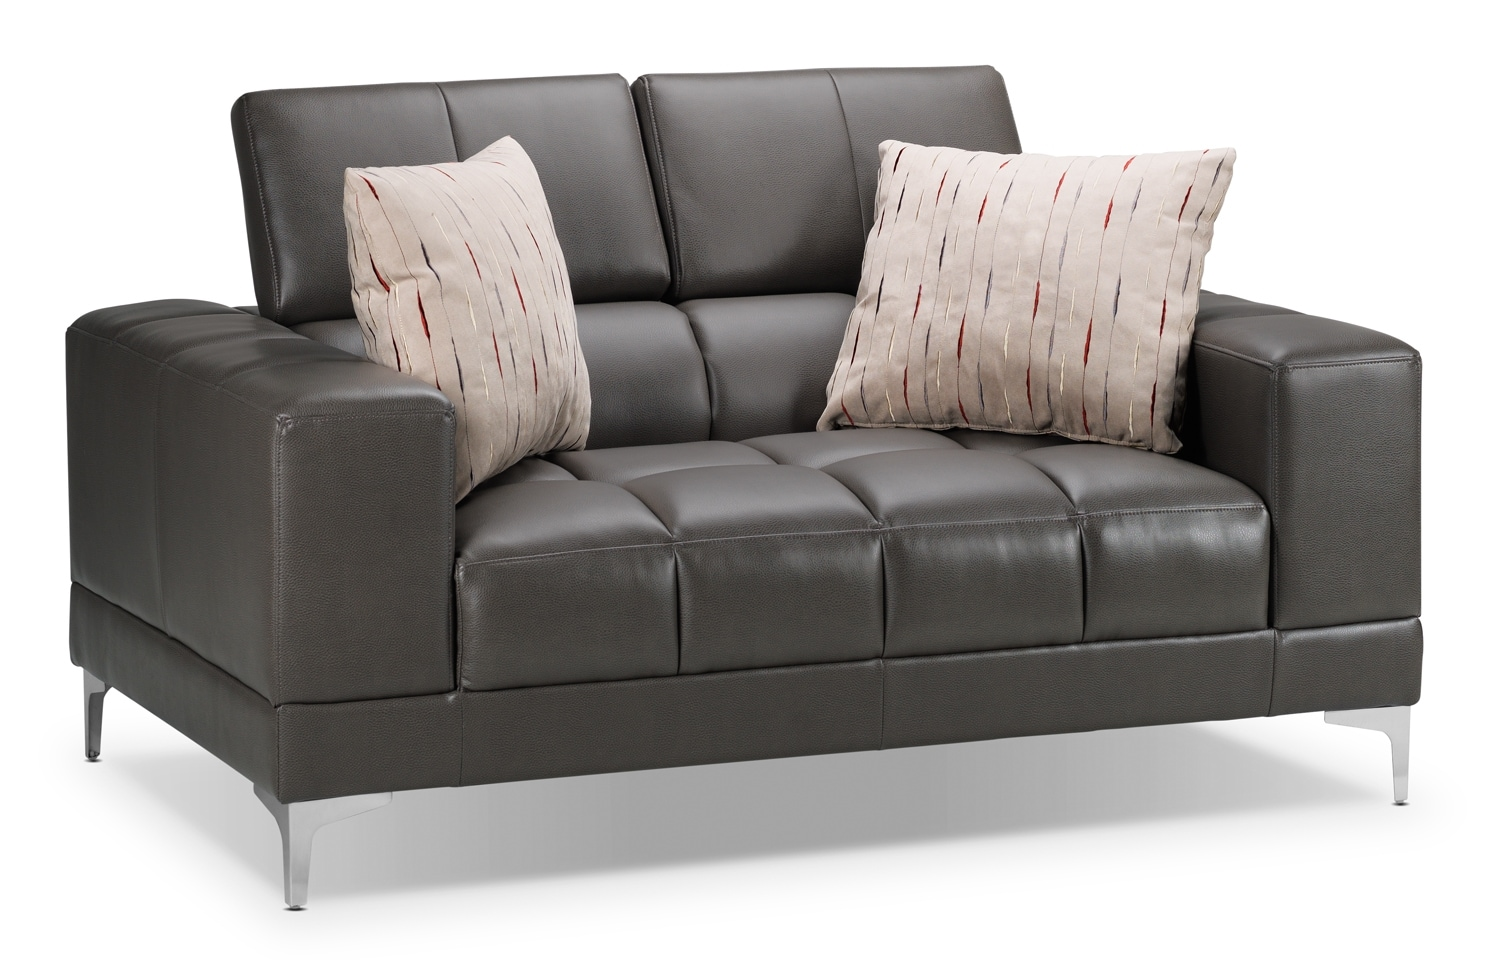 Living Room Furniture - Bel-Air Loveseat - Elephant